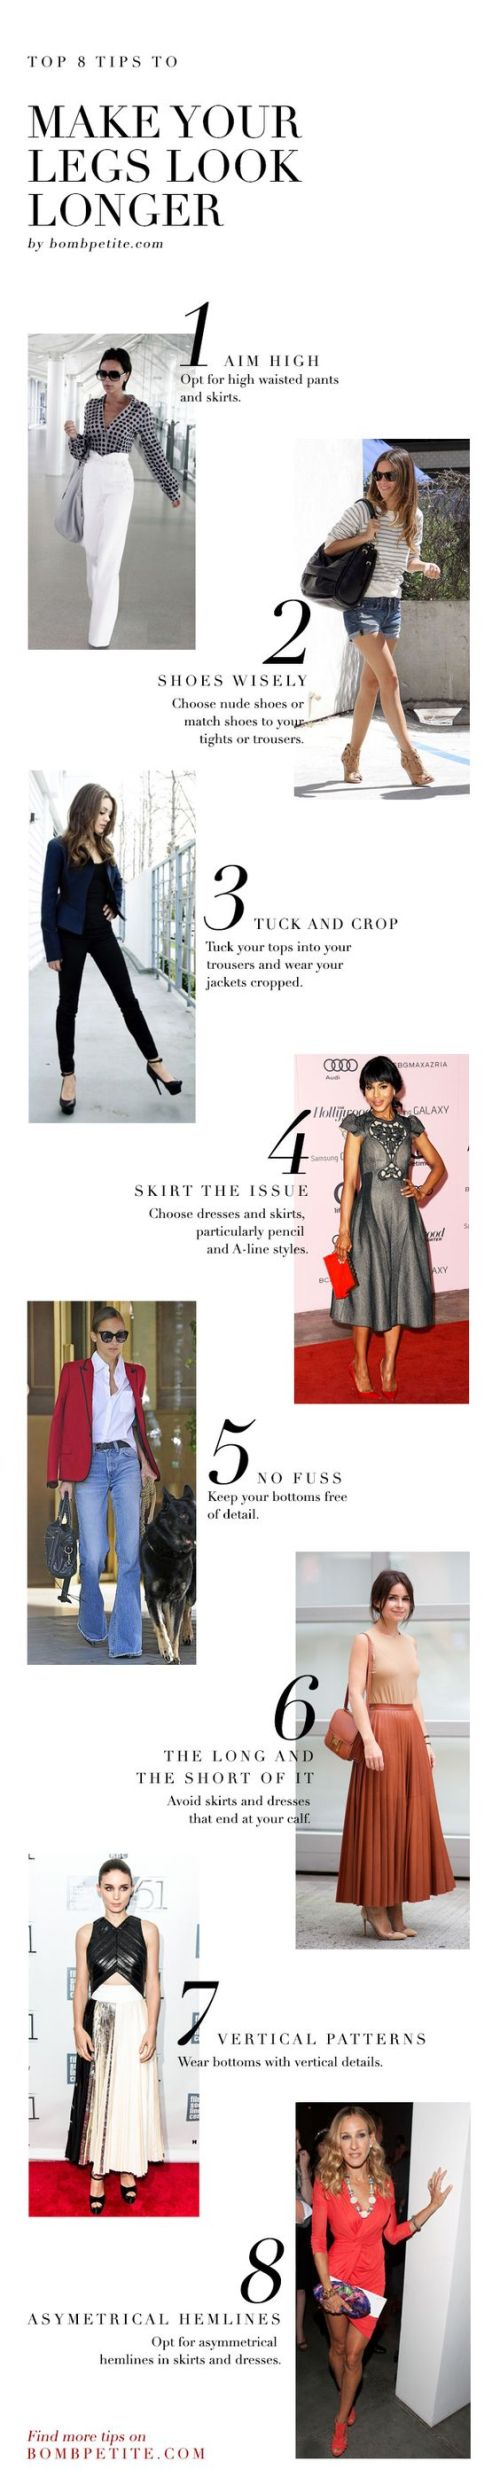 blog sittakarina - 7 Styling Tricks OK yang Bikin Penampilan Fashionable 6